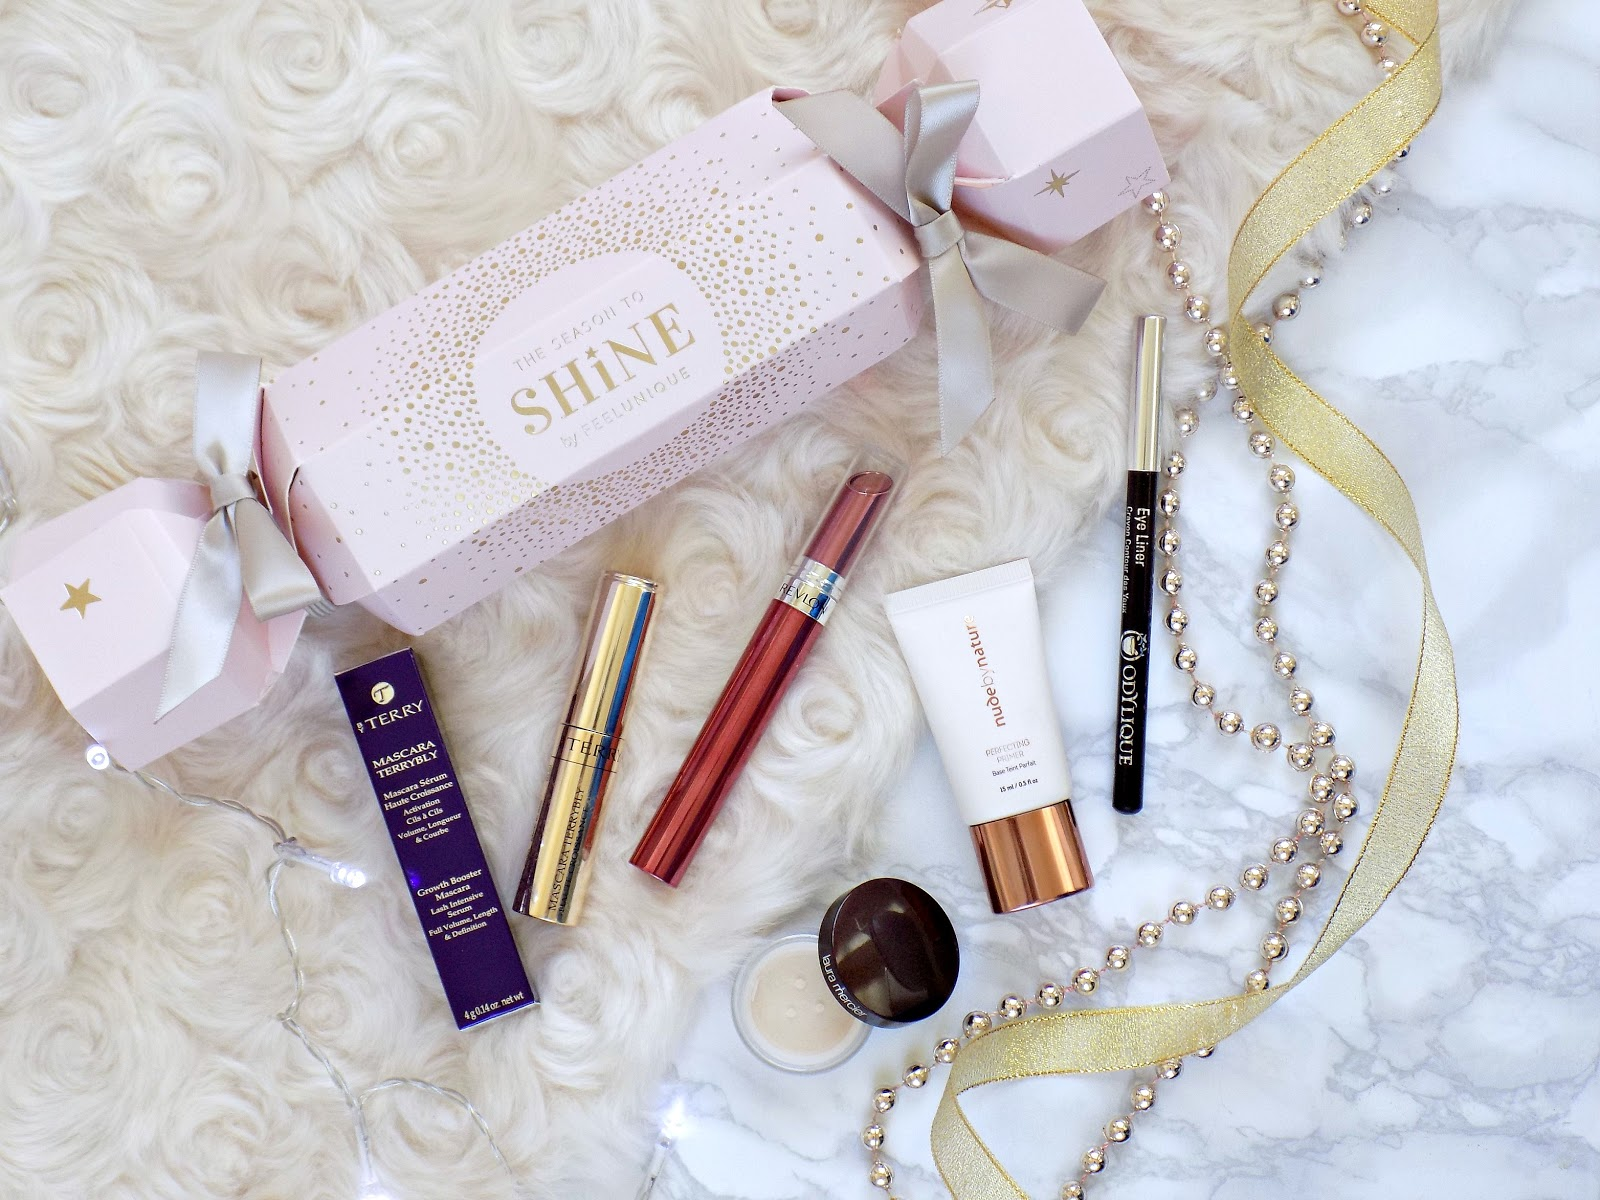 fd656bef329 My Christmas gifts recommendations, #2: for makeup junkies | Mummy's ...